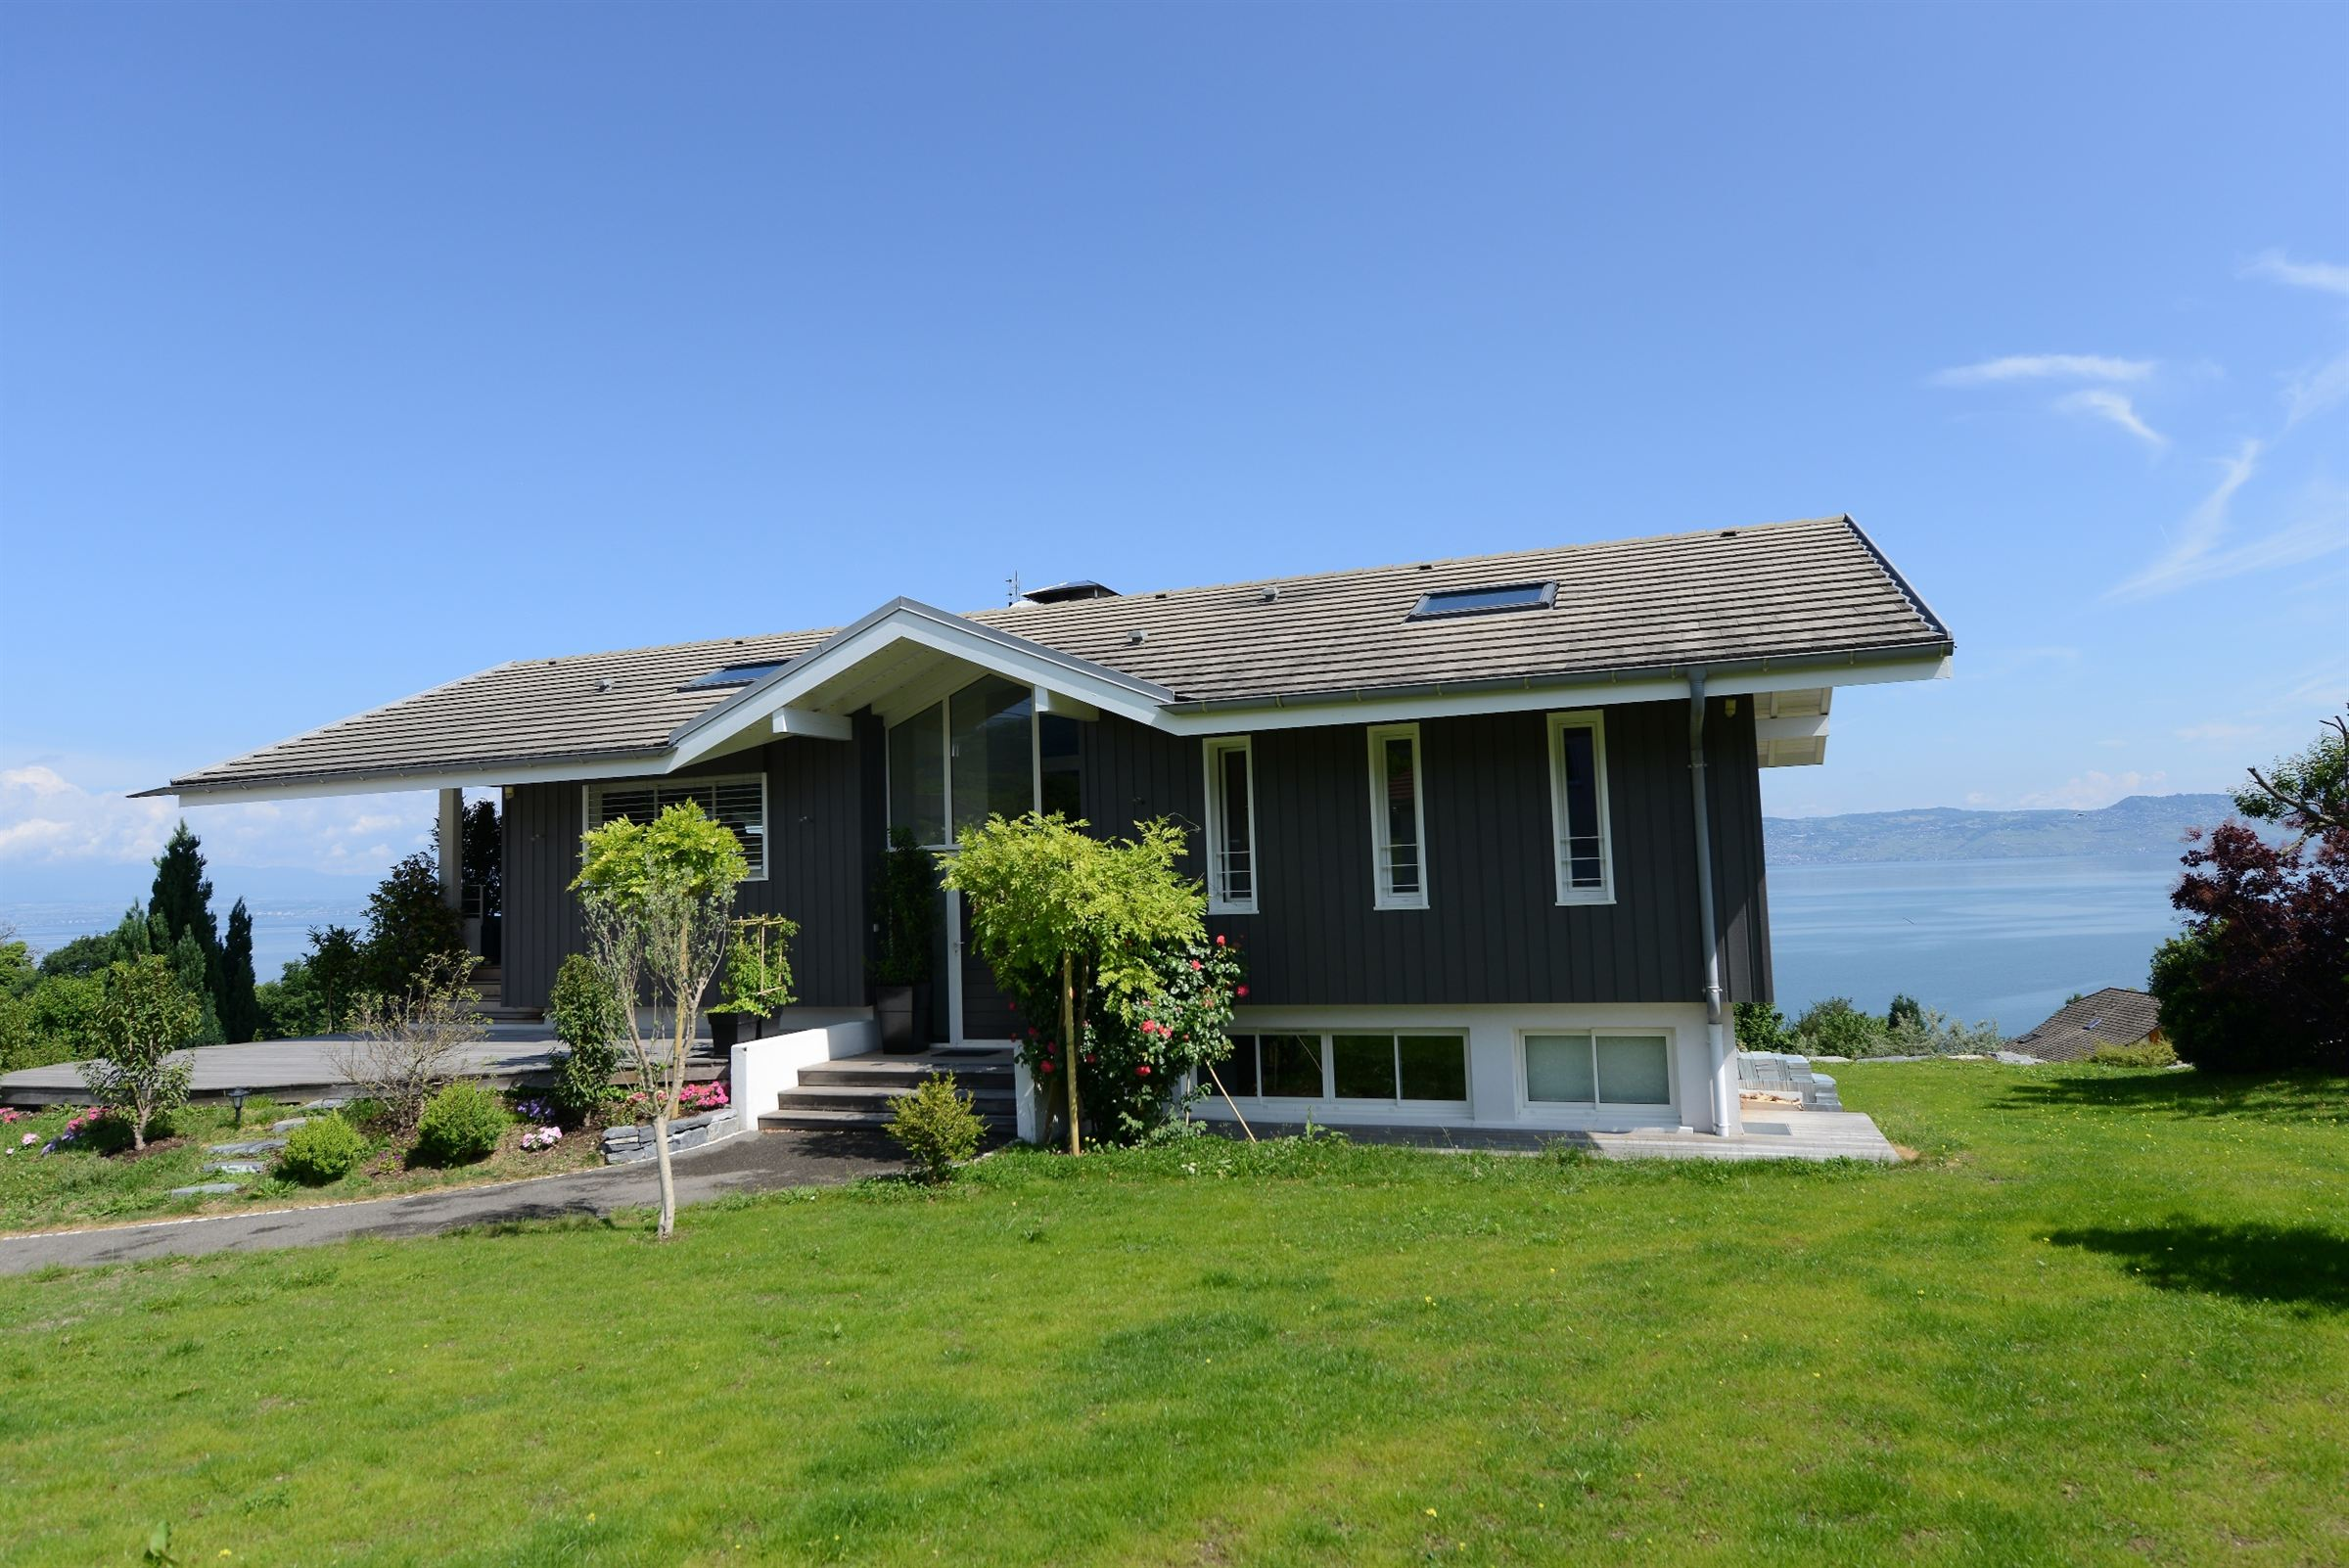 Single Family Home for Sale at Nice villa overlooking the lake Lugrin, Rhone-Alpes 74500 France